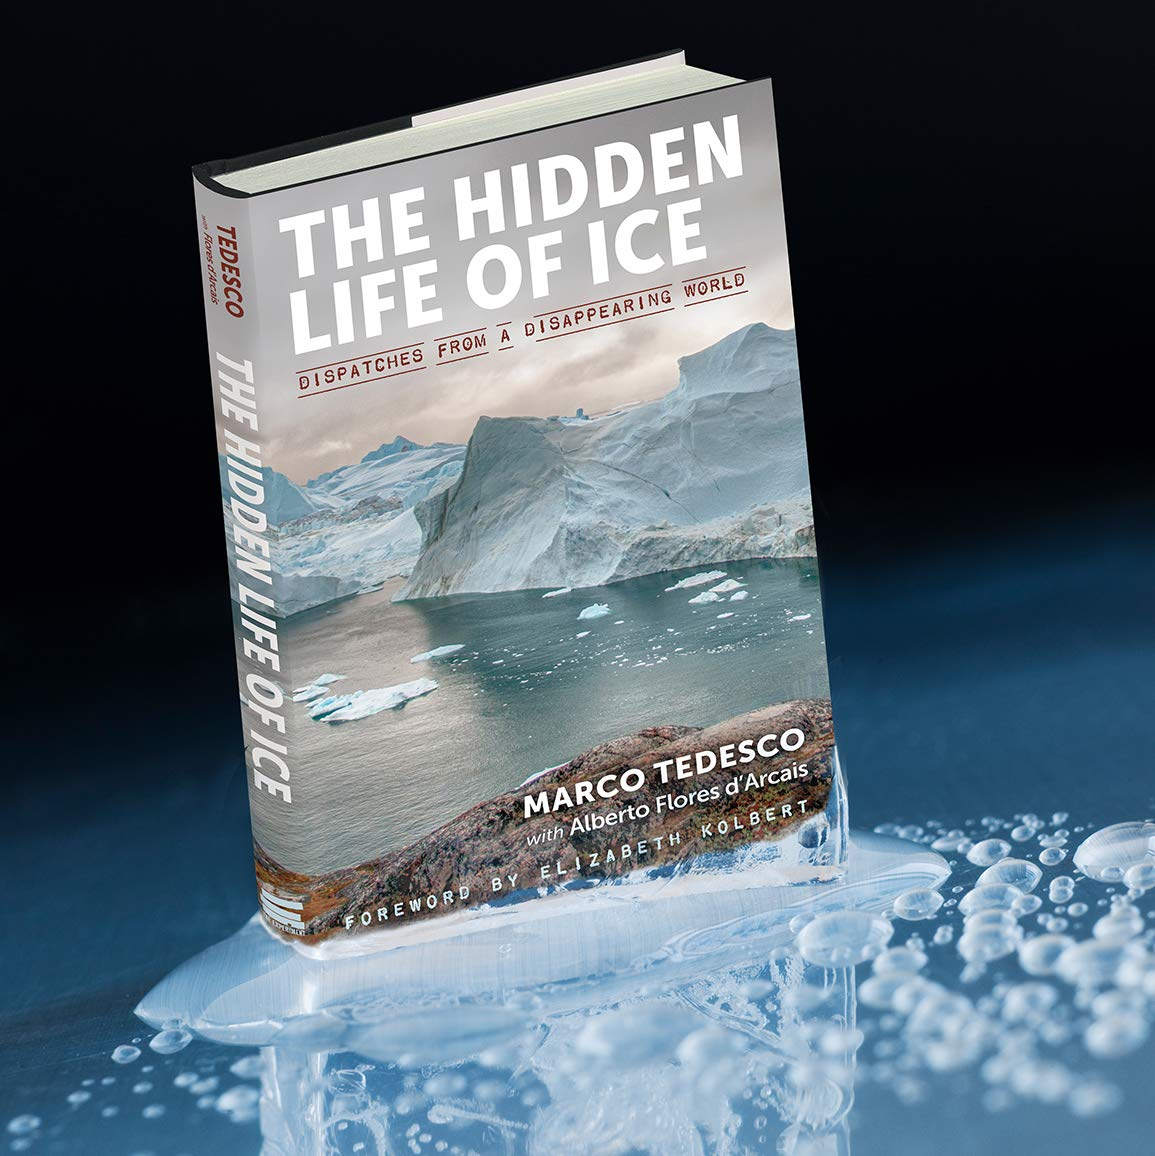 The Hidden Life of Ice: Dispatches from a Disappearing World: Tedesco, Marco,  Flores d'Arcais, Alberto, Muir, Denise, Kolbert, Elizabeth: 9781615196999:  Amazon.com: Books